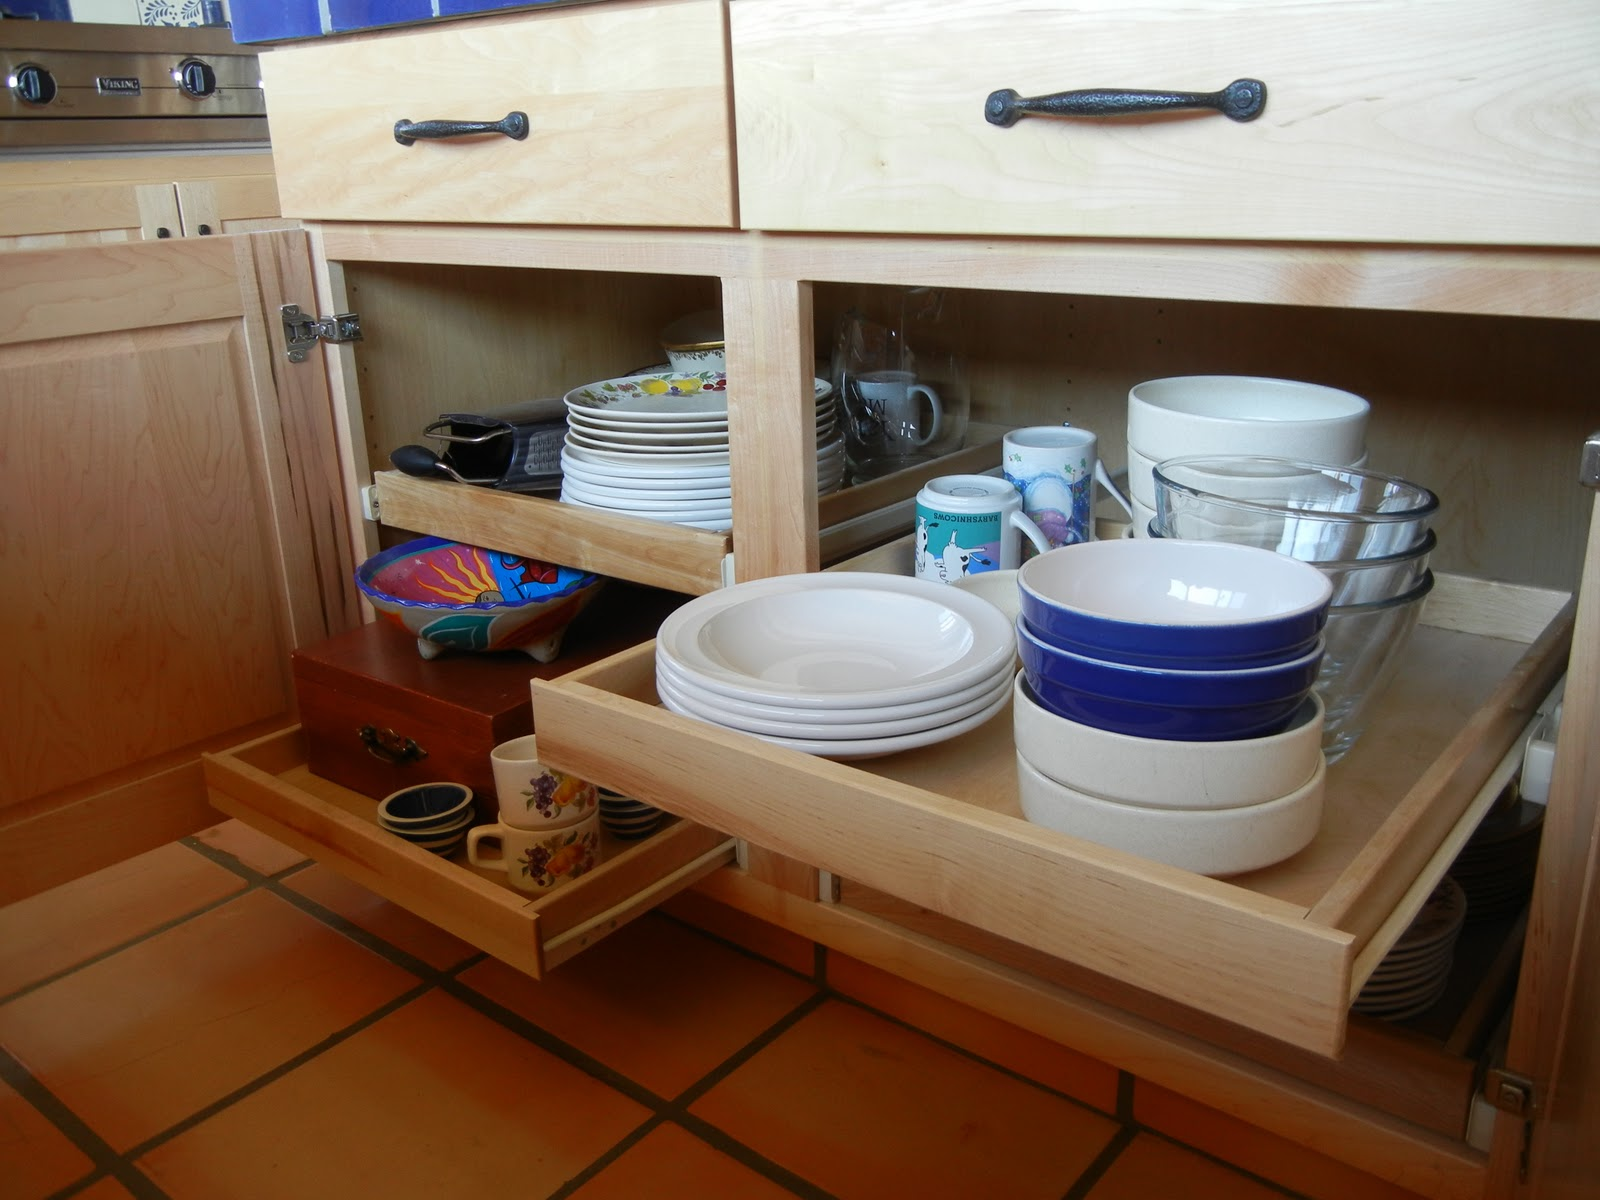 Kitchen Cabinets with Slide Out Shelves